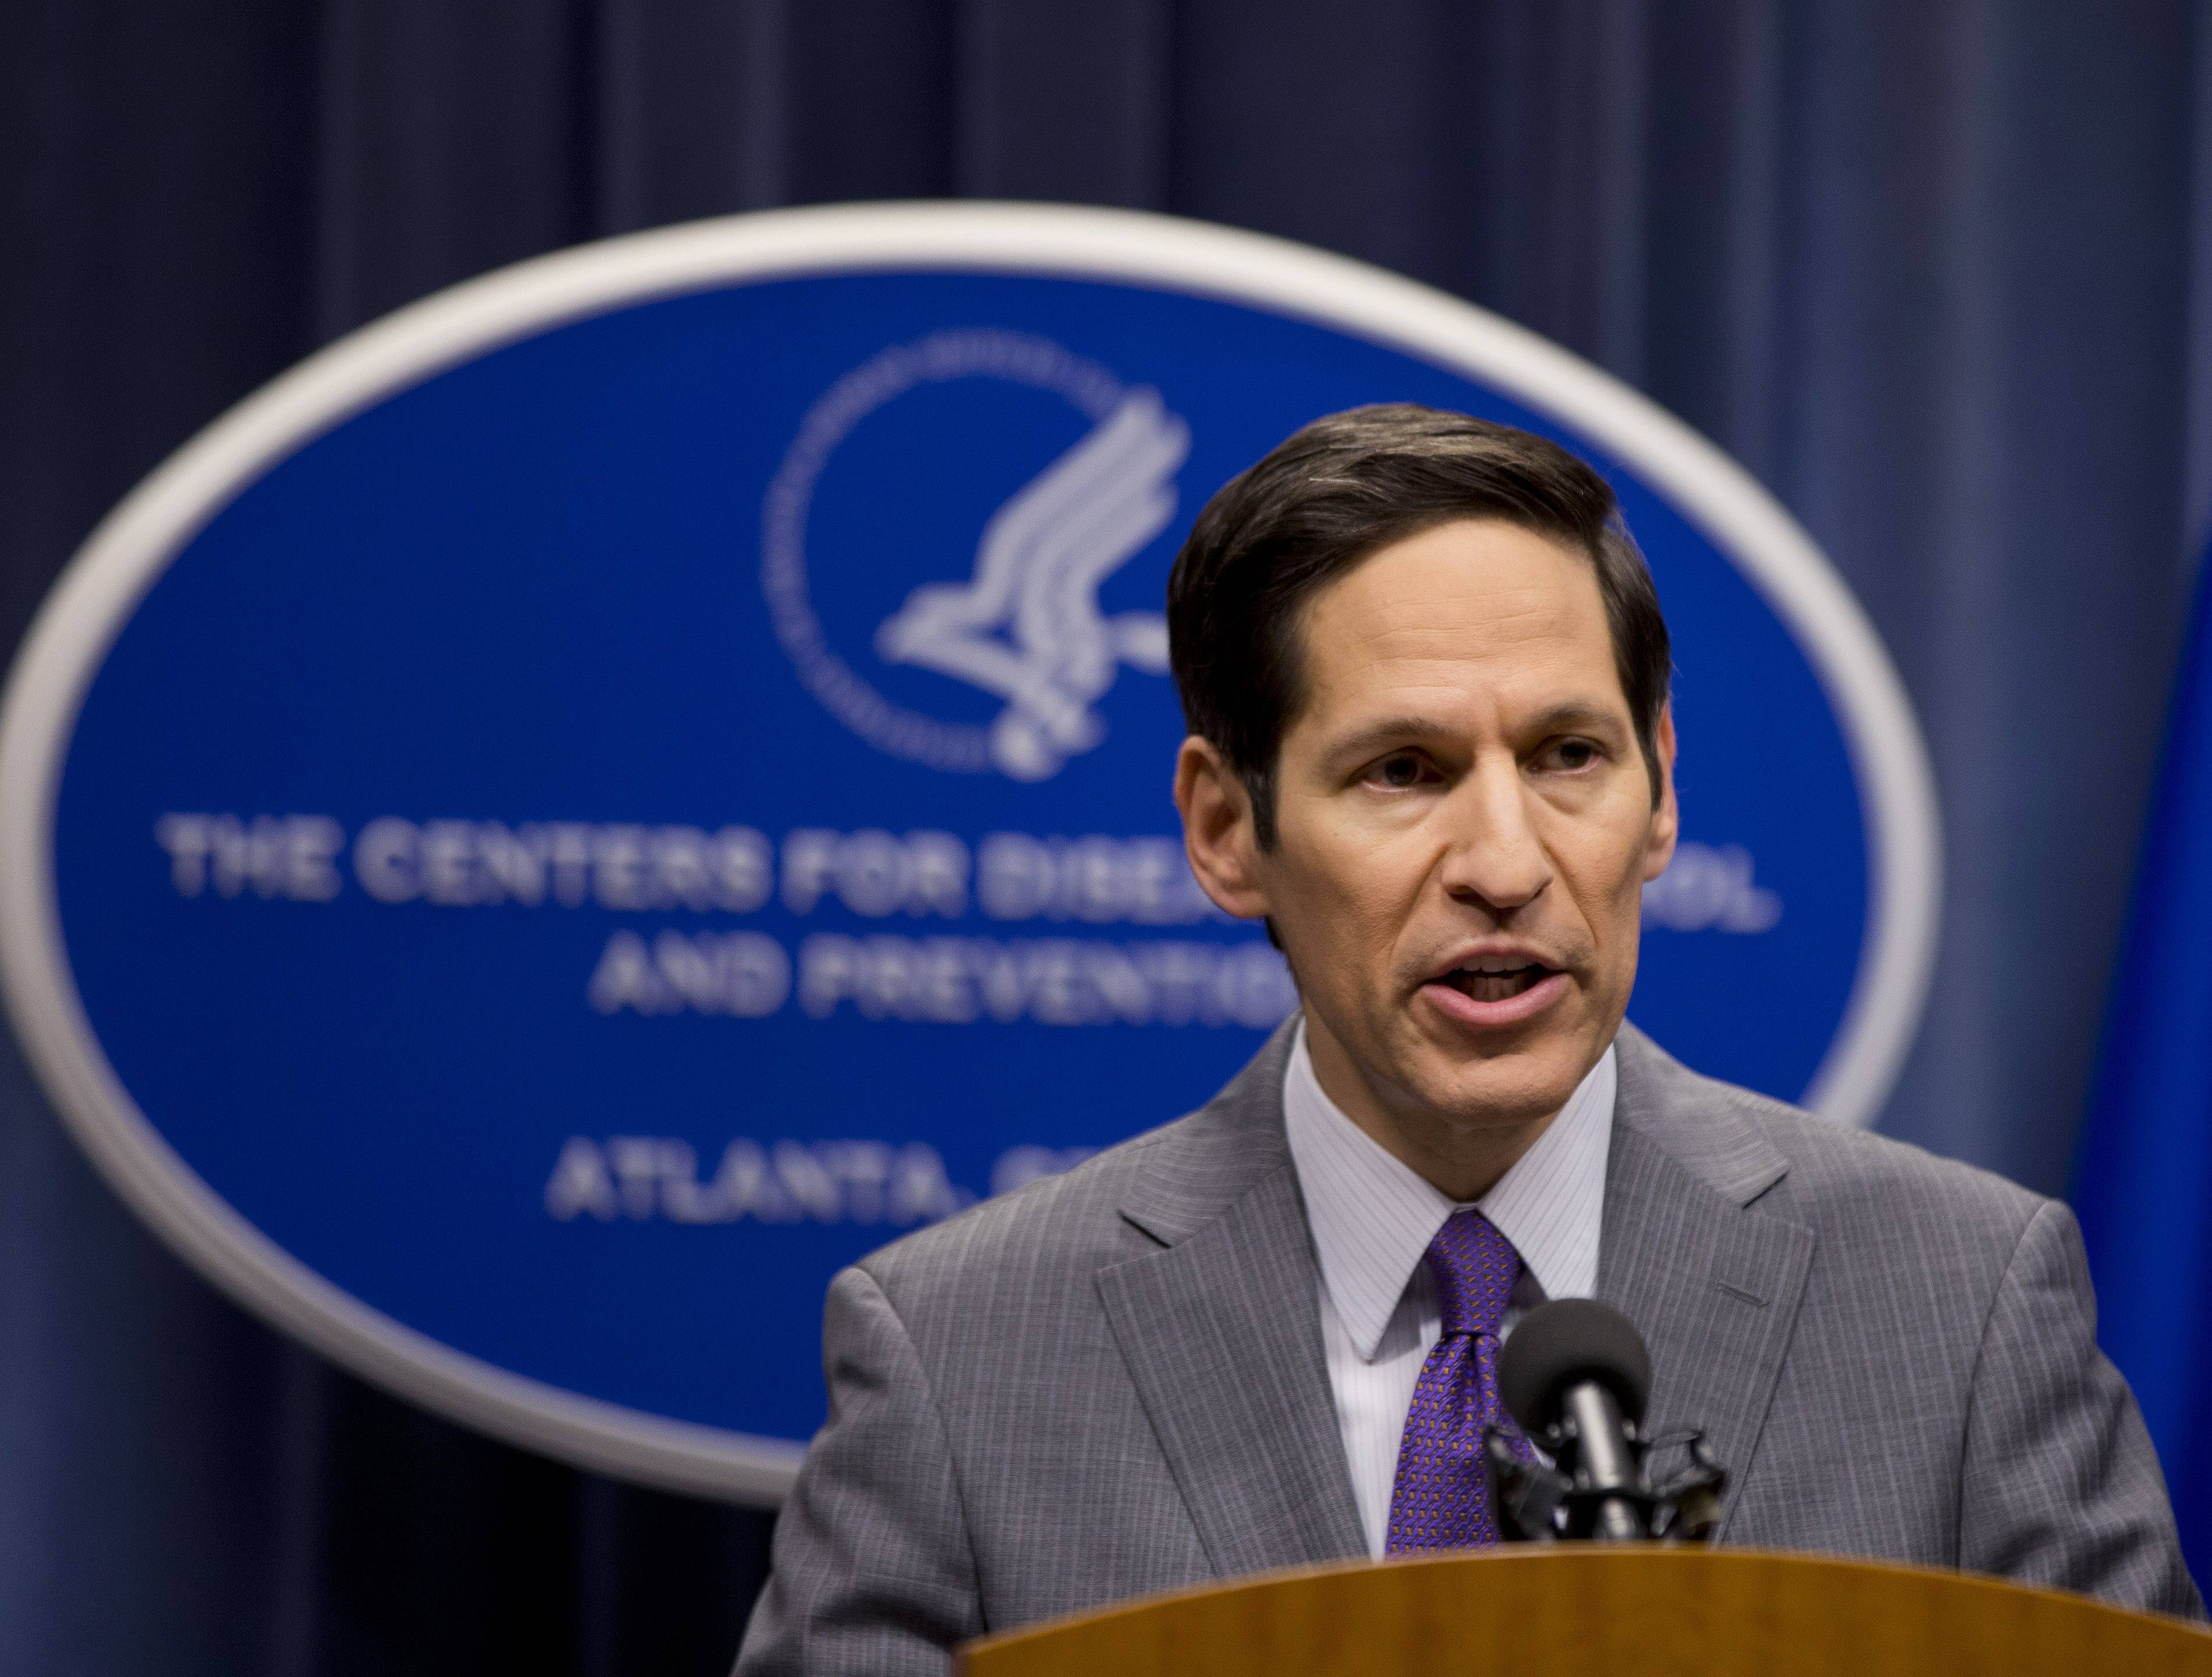 Director of Centers for Disease Control and Prevention Dr. Tom Frieden speaks during a news conference after confirming that a patient at Texas Health Presbyterian Hospital has tested positive for Ebola, the first case of the disease to be diagnosed in the United States, announced Tuesday in Atlanta. The person, an adult who was not publicly identified, developed symptoms days after returning to Texas from Liberia and showed no symptoms on the plane, according to the Centers for Disease Control and Prevention.